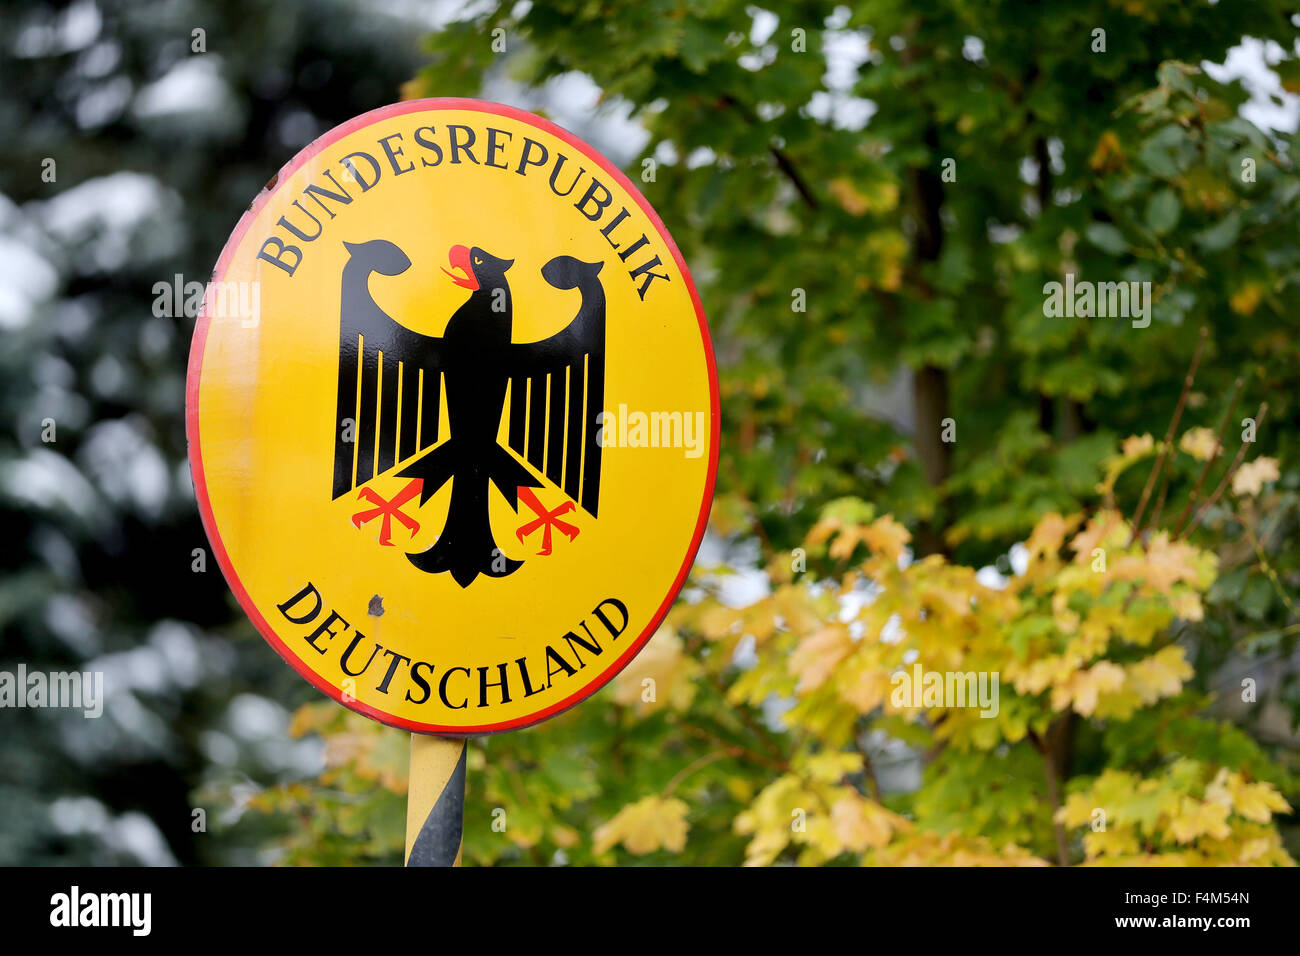 A sign that reads 'Bundesrepublik Deutschland' (Federal Republic of Germany) pictured at the Czech-German border Stock Photo